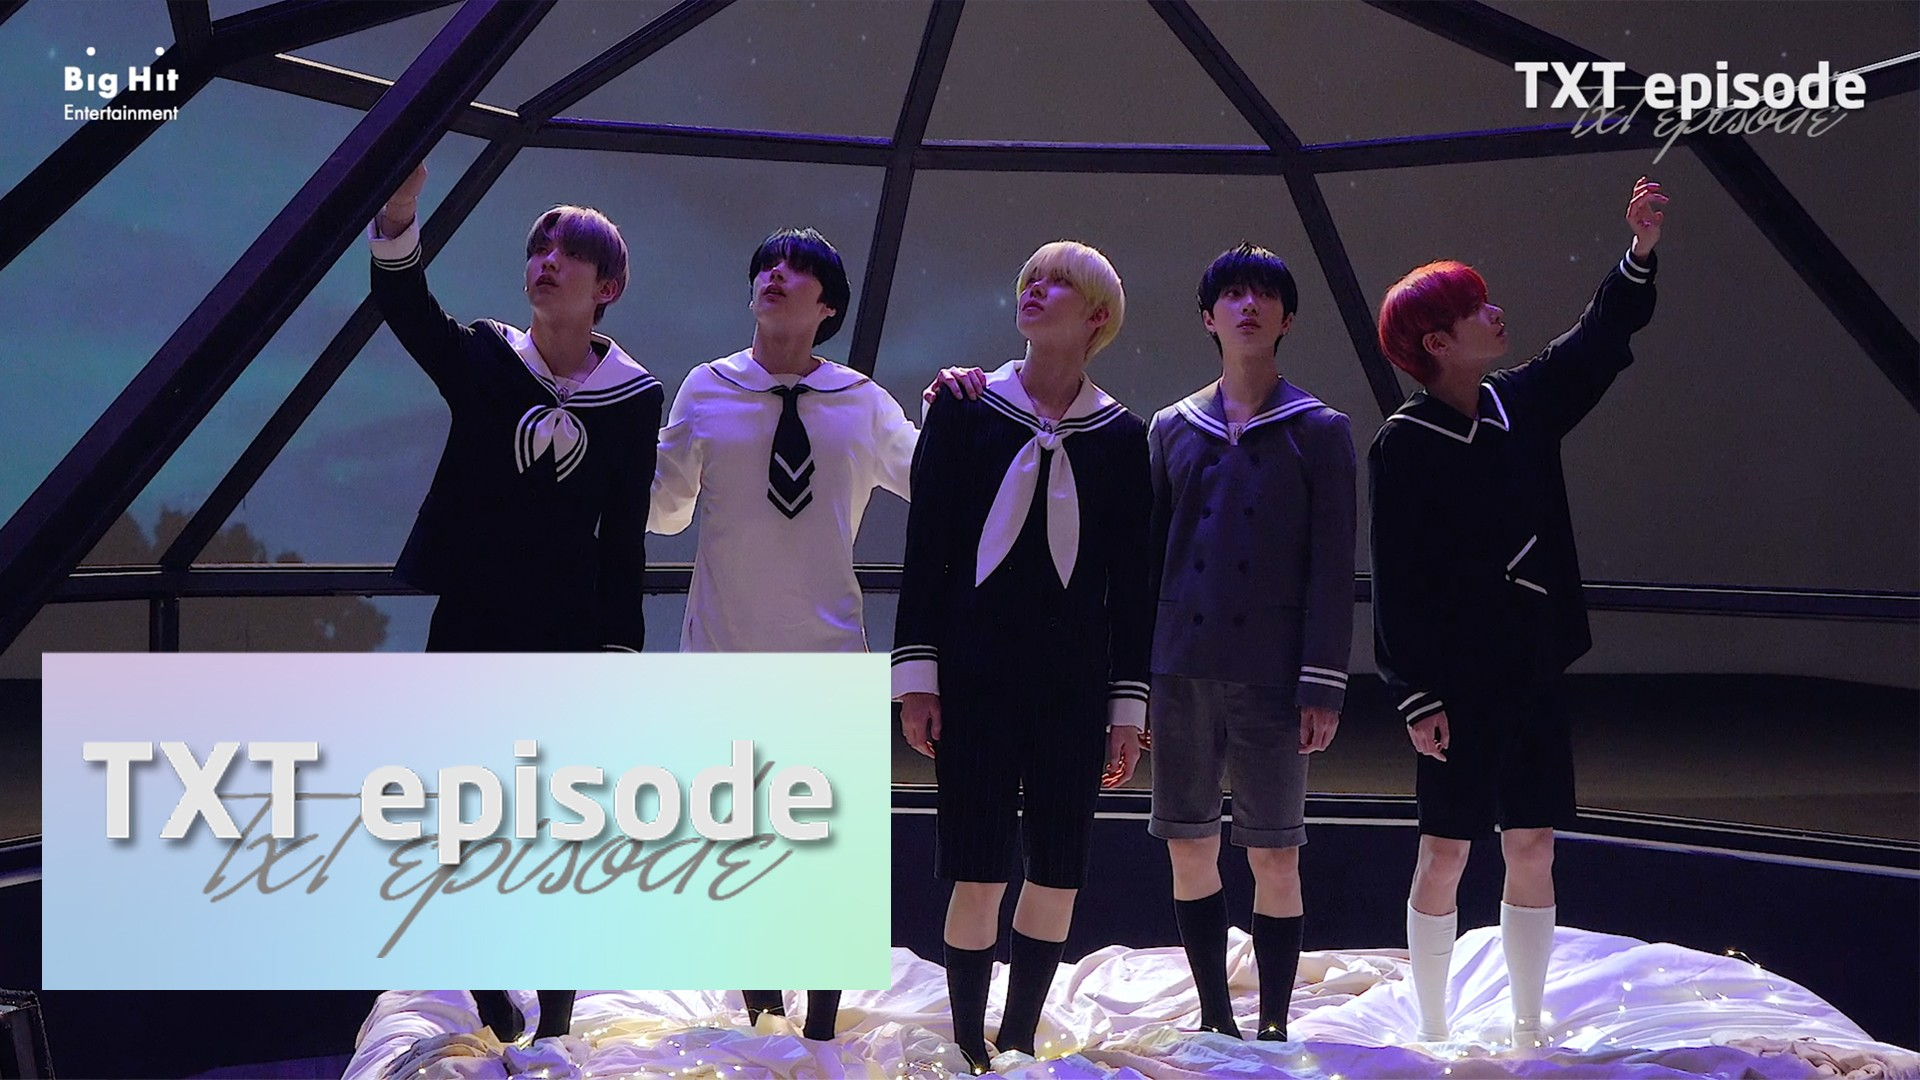 [EPISODE] TXT (투모로우바이투게더) '꿈의 장: ETERNITY' Jacket shooting sketch